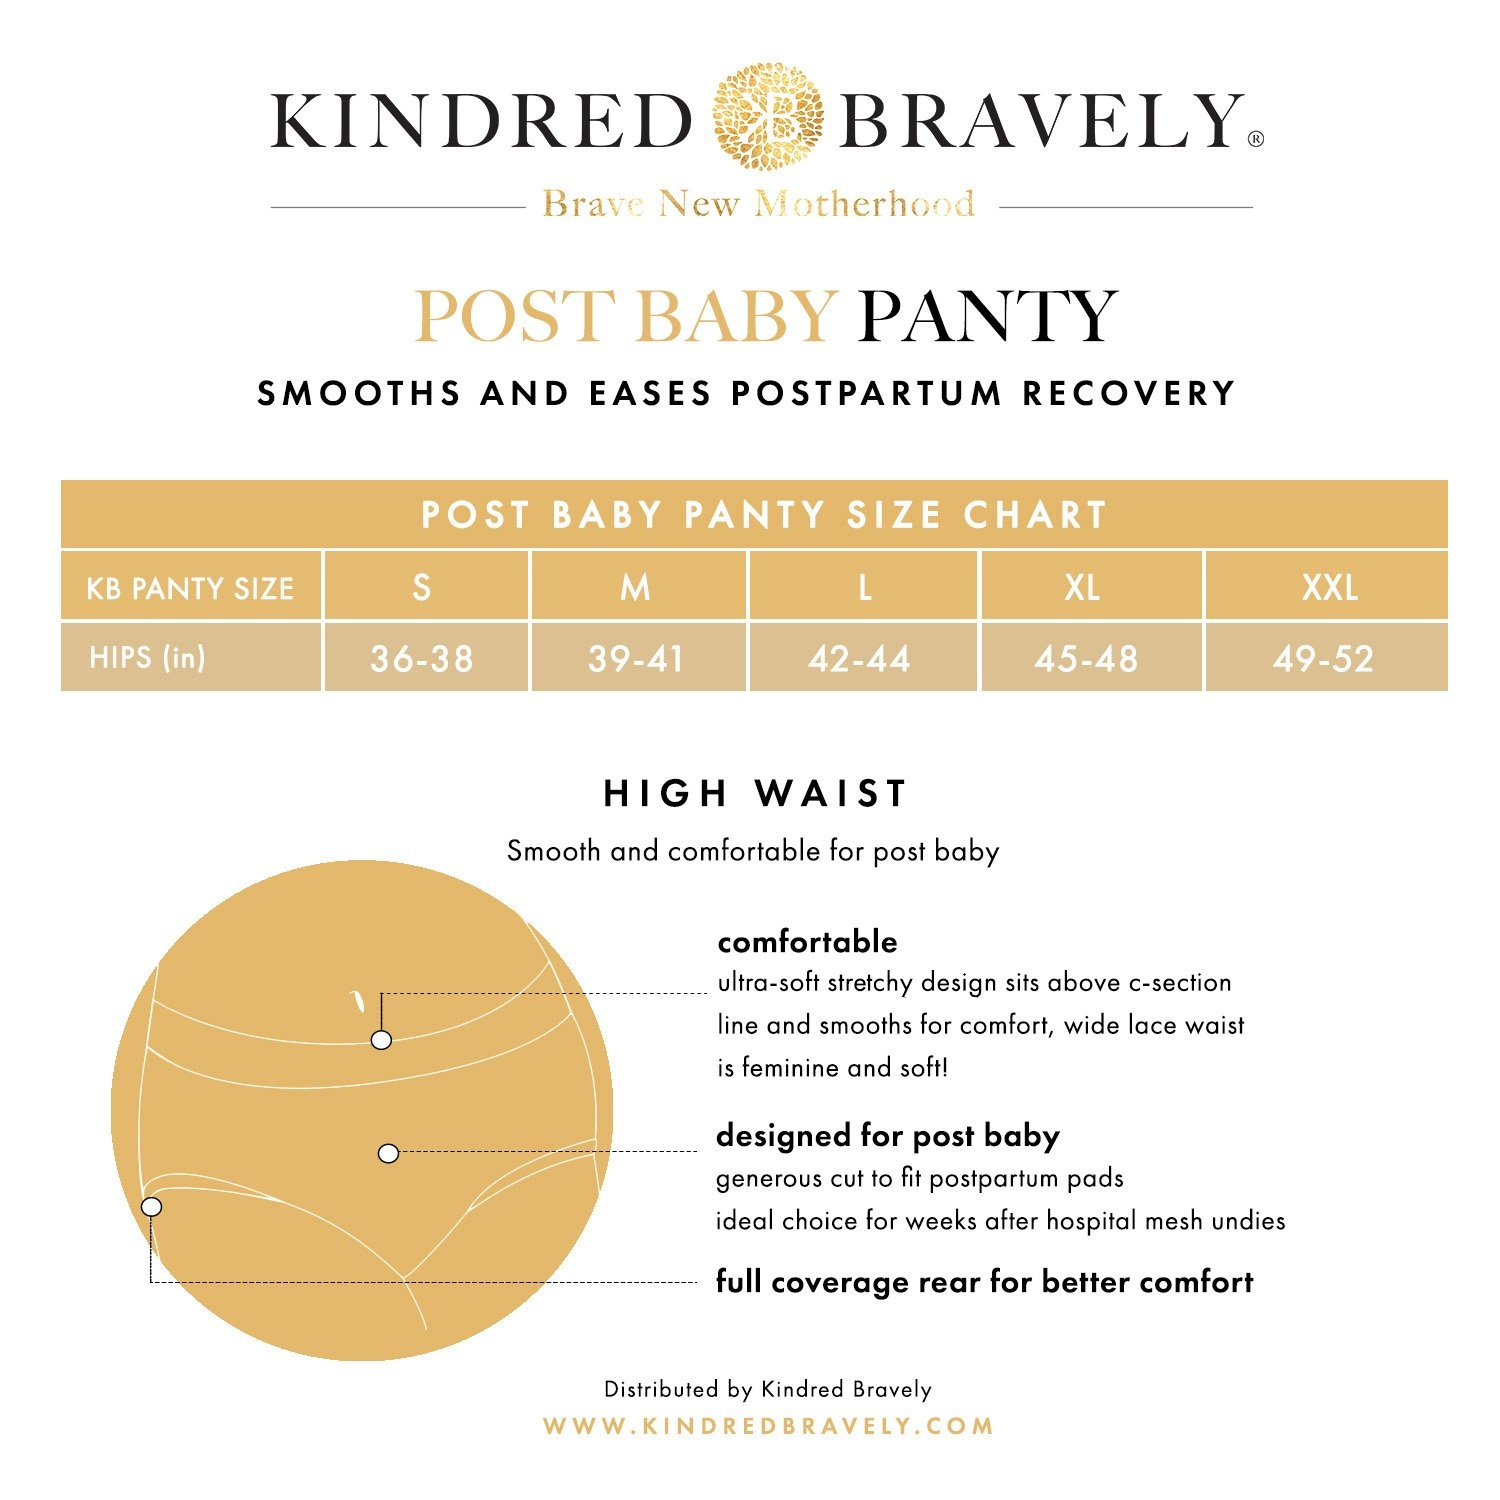 size chart for Kindred Bravely postpartum panties